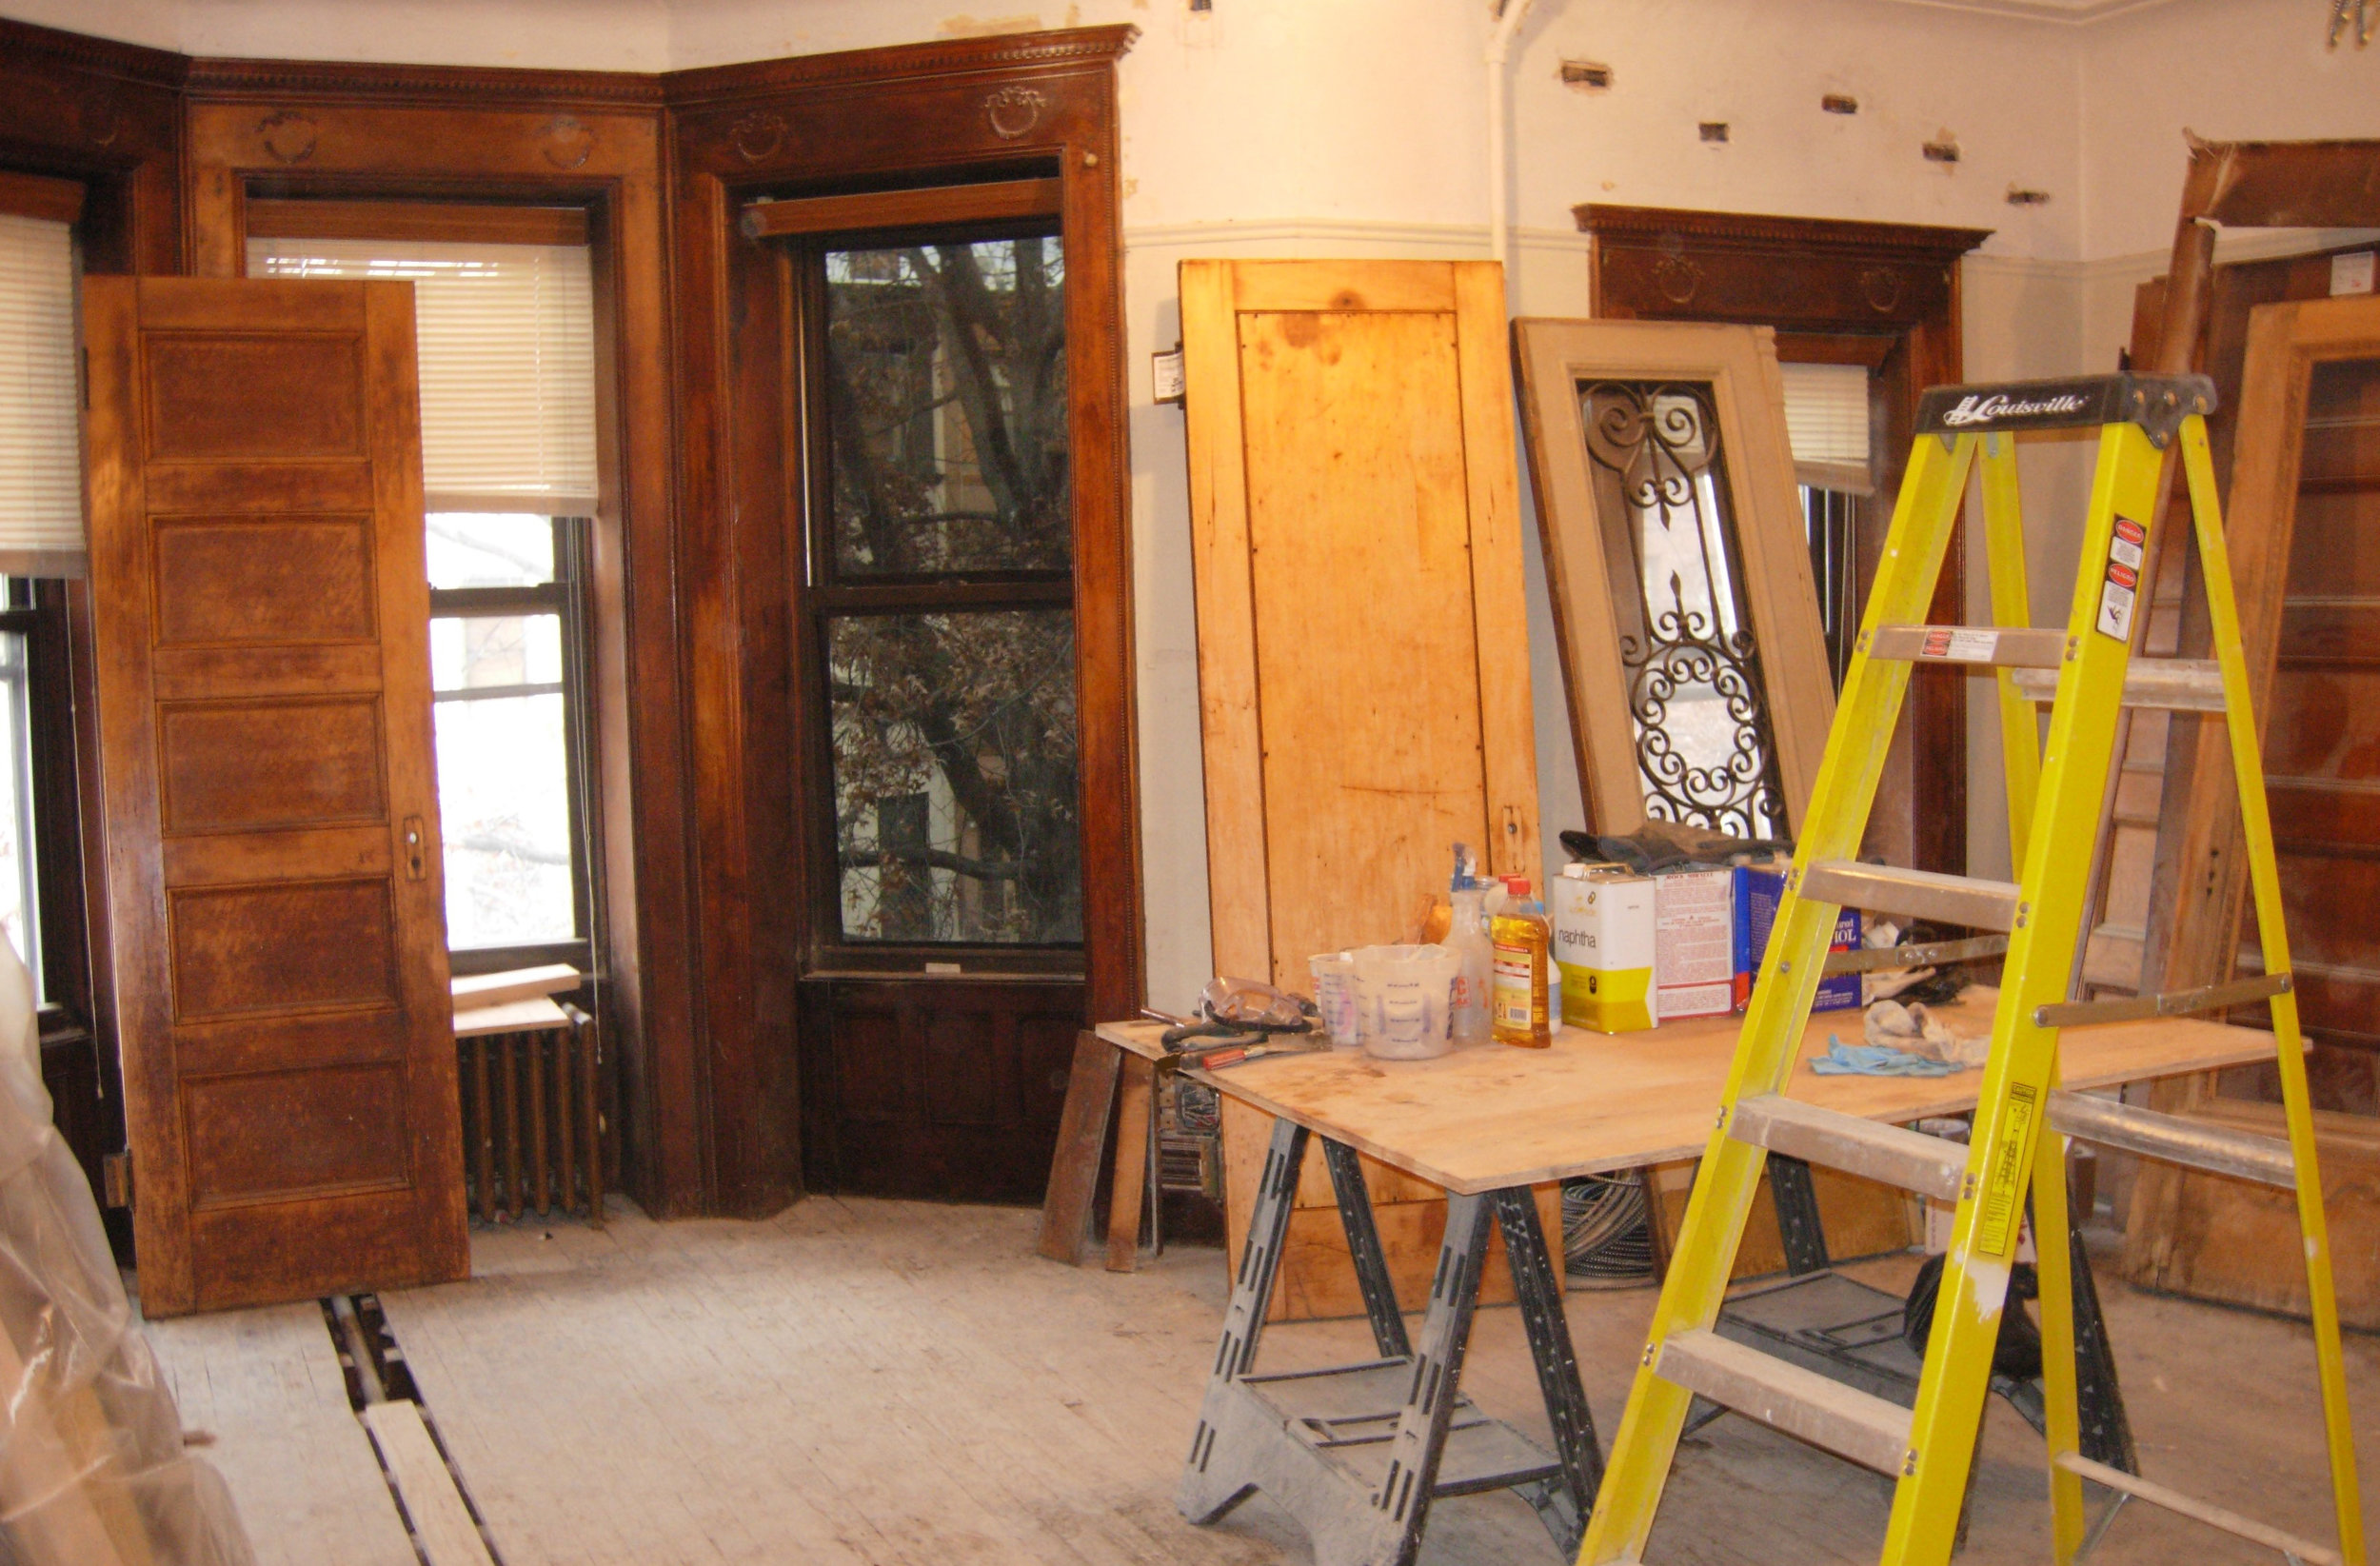 new-york-brownstone-undergoing-renovation.jpg